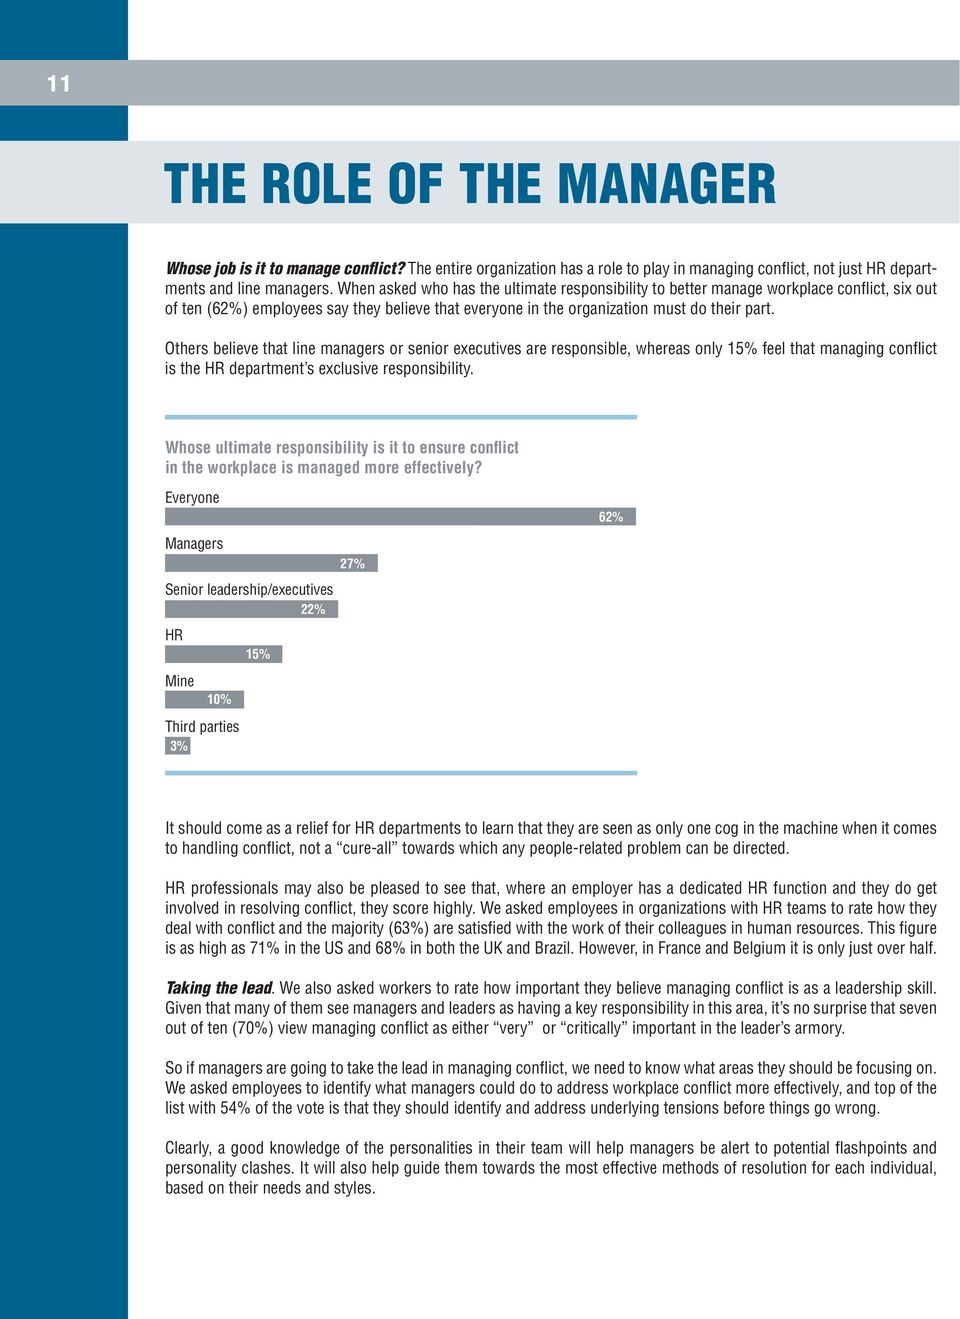 Others believe that line managers or senior executives are responsible, whereas only 15% feel that managing conflict is the HR department s exclusive responsibility.